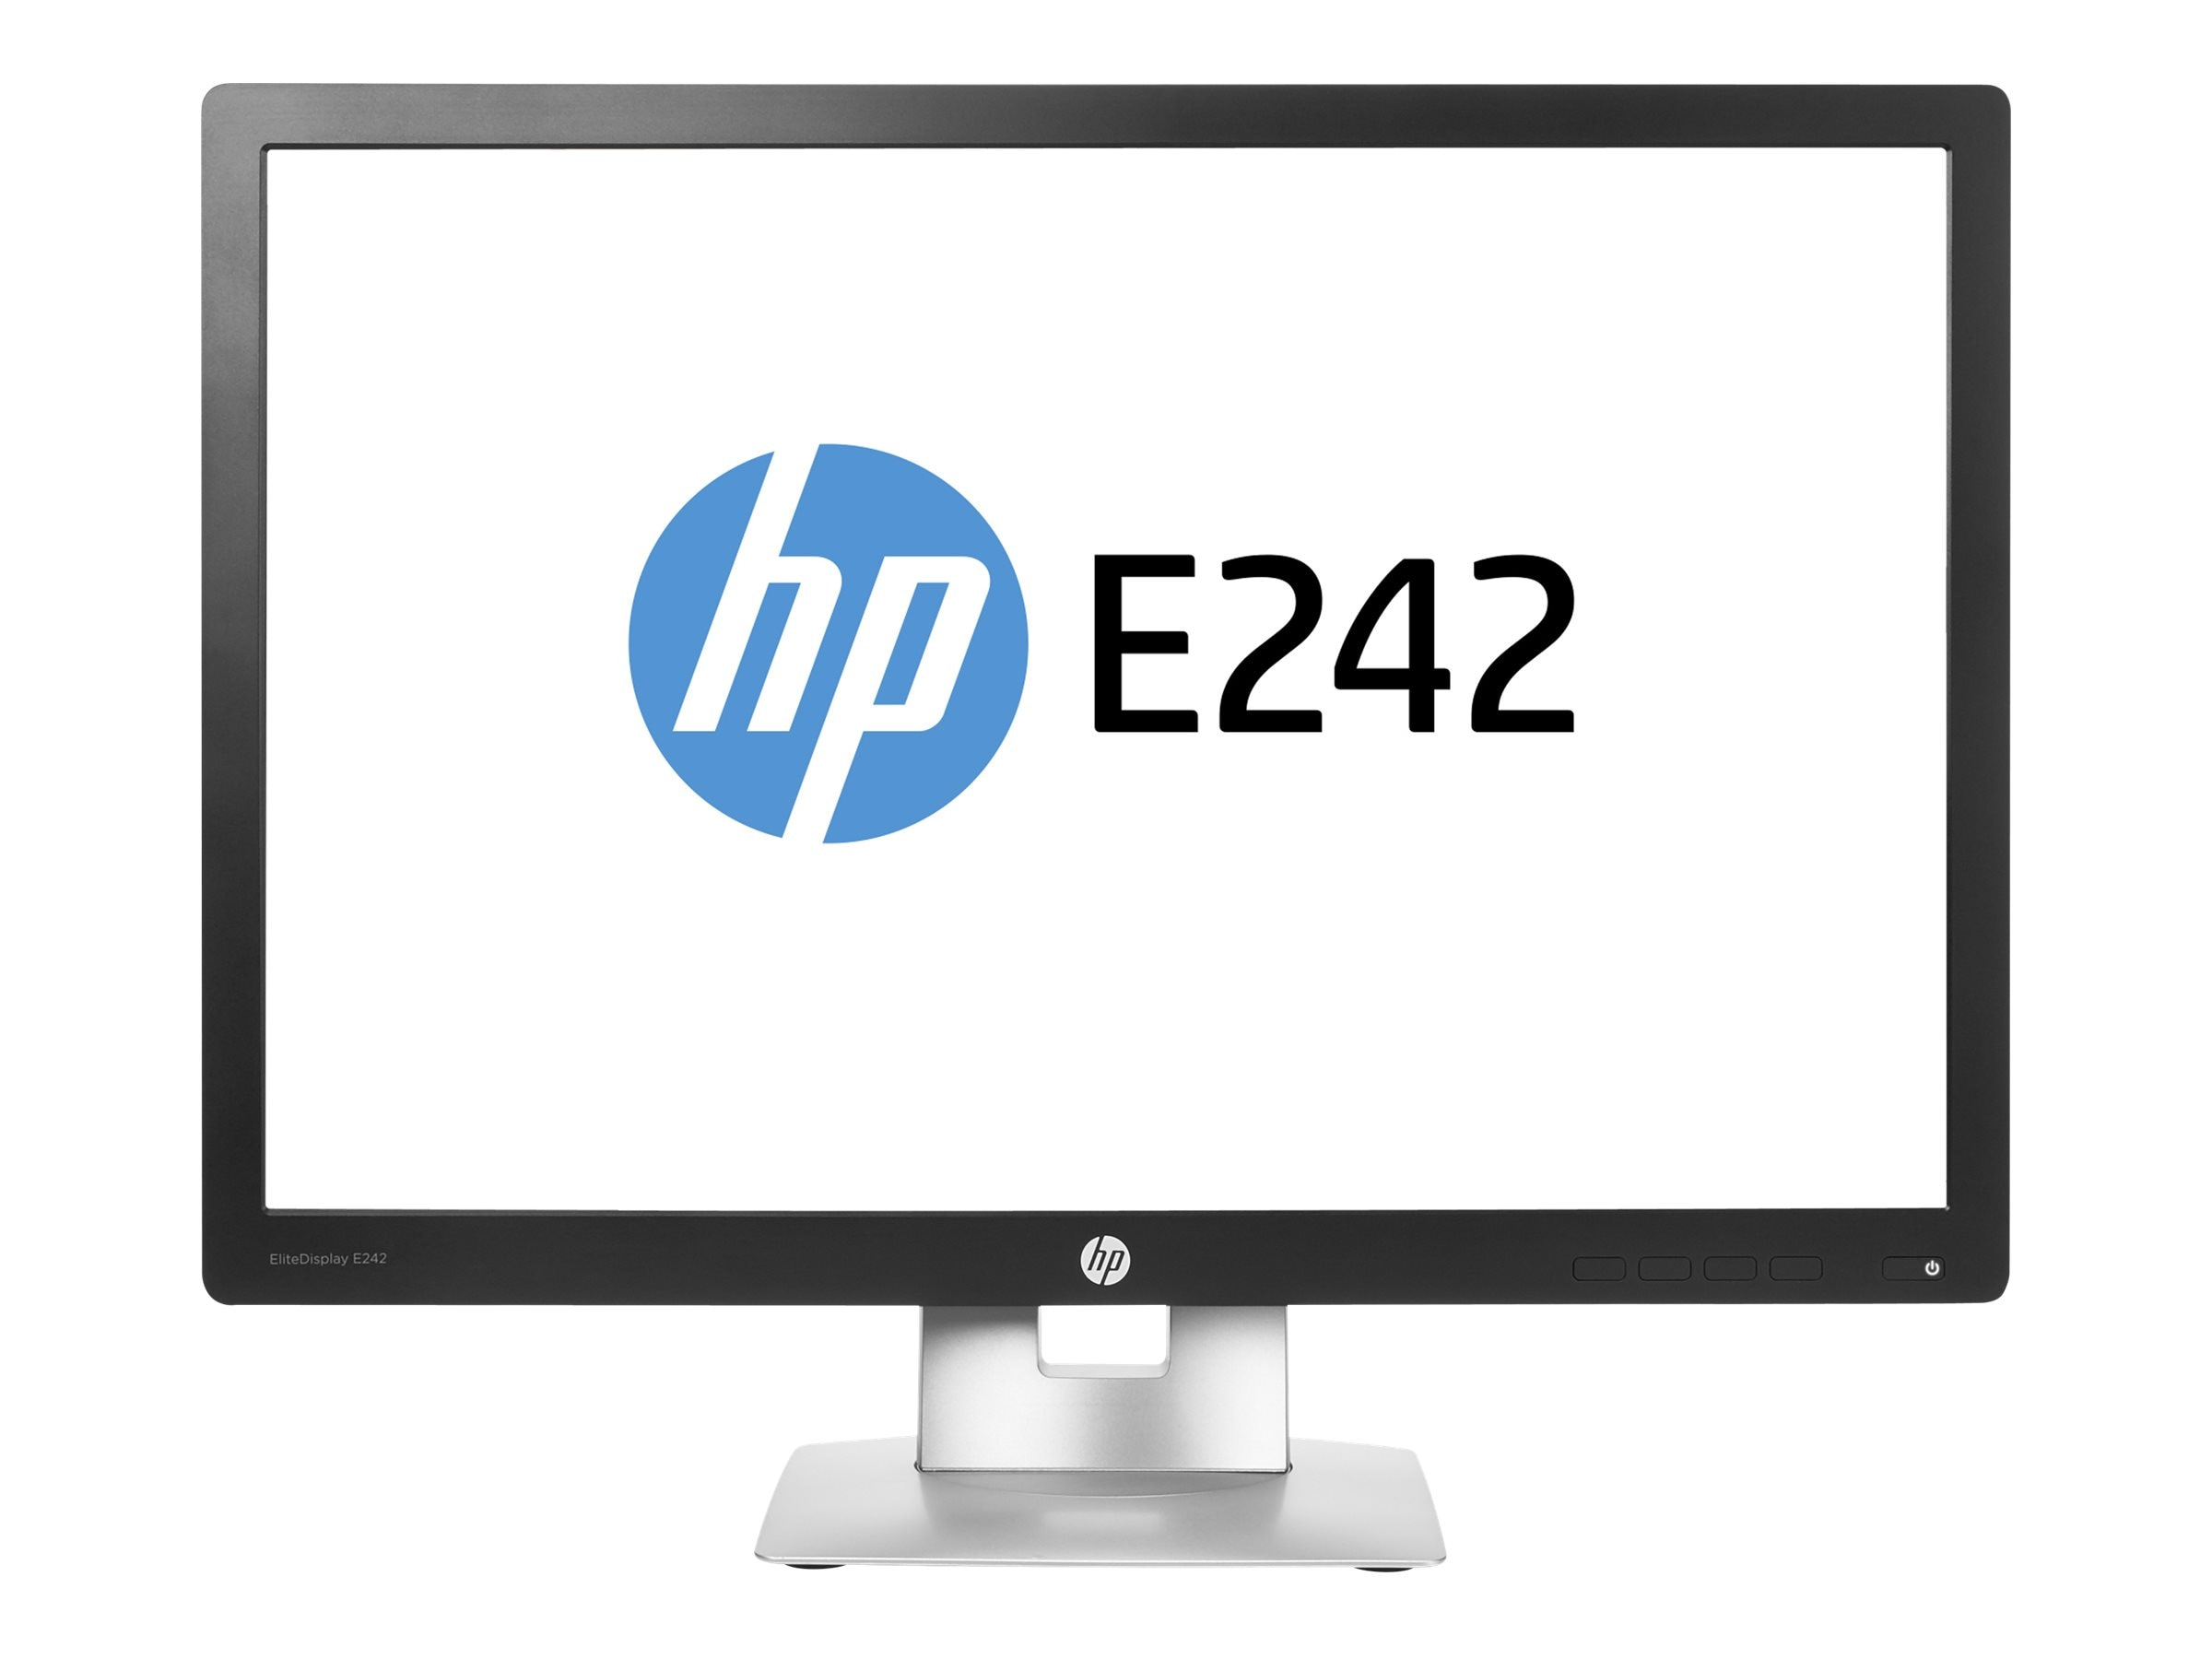 HP 24 E242 Full HD LED-LCD Monitor, Black, M1P02AA#ABA, 30737214, Monitors - LED-LCD